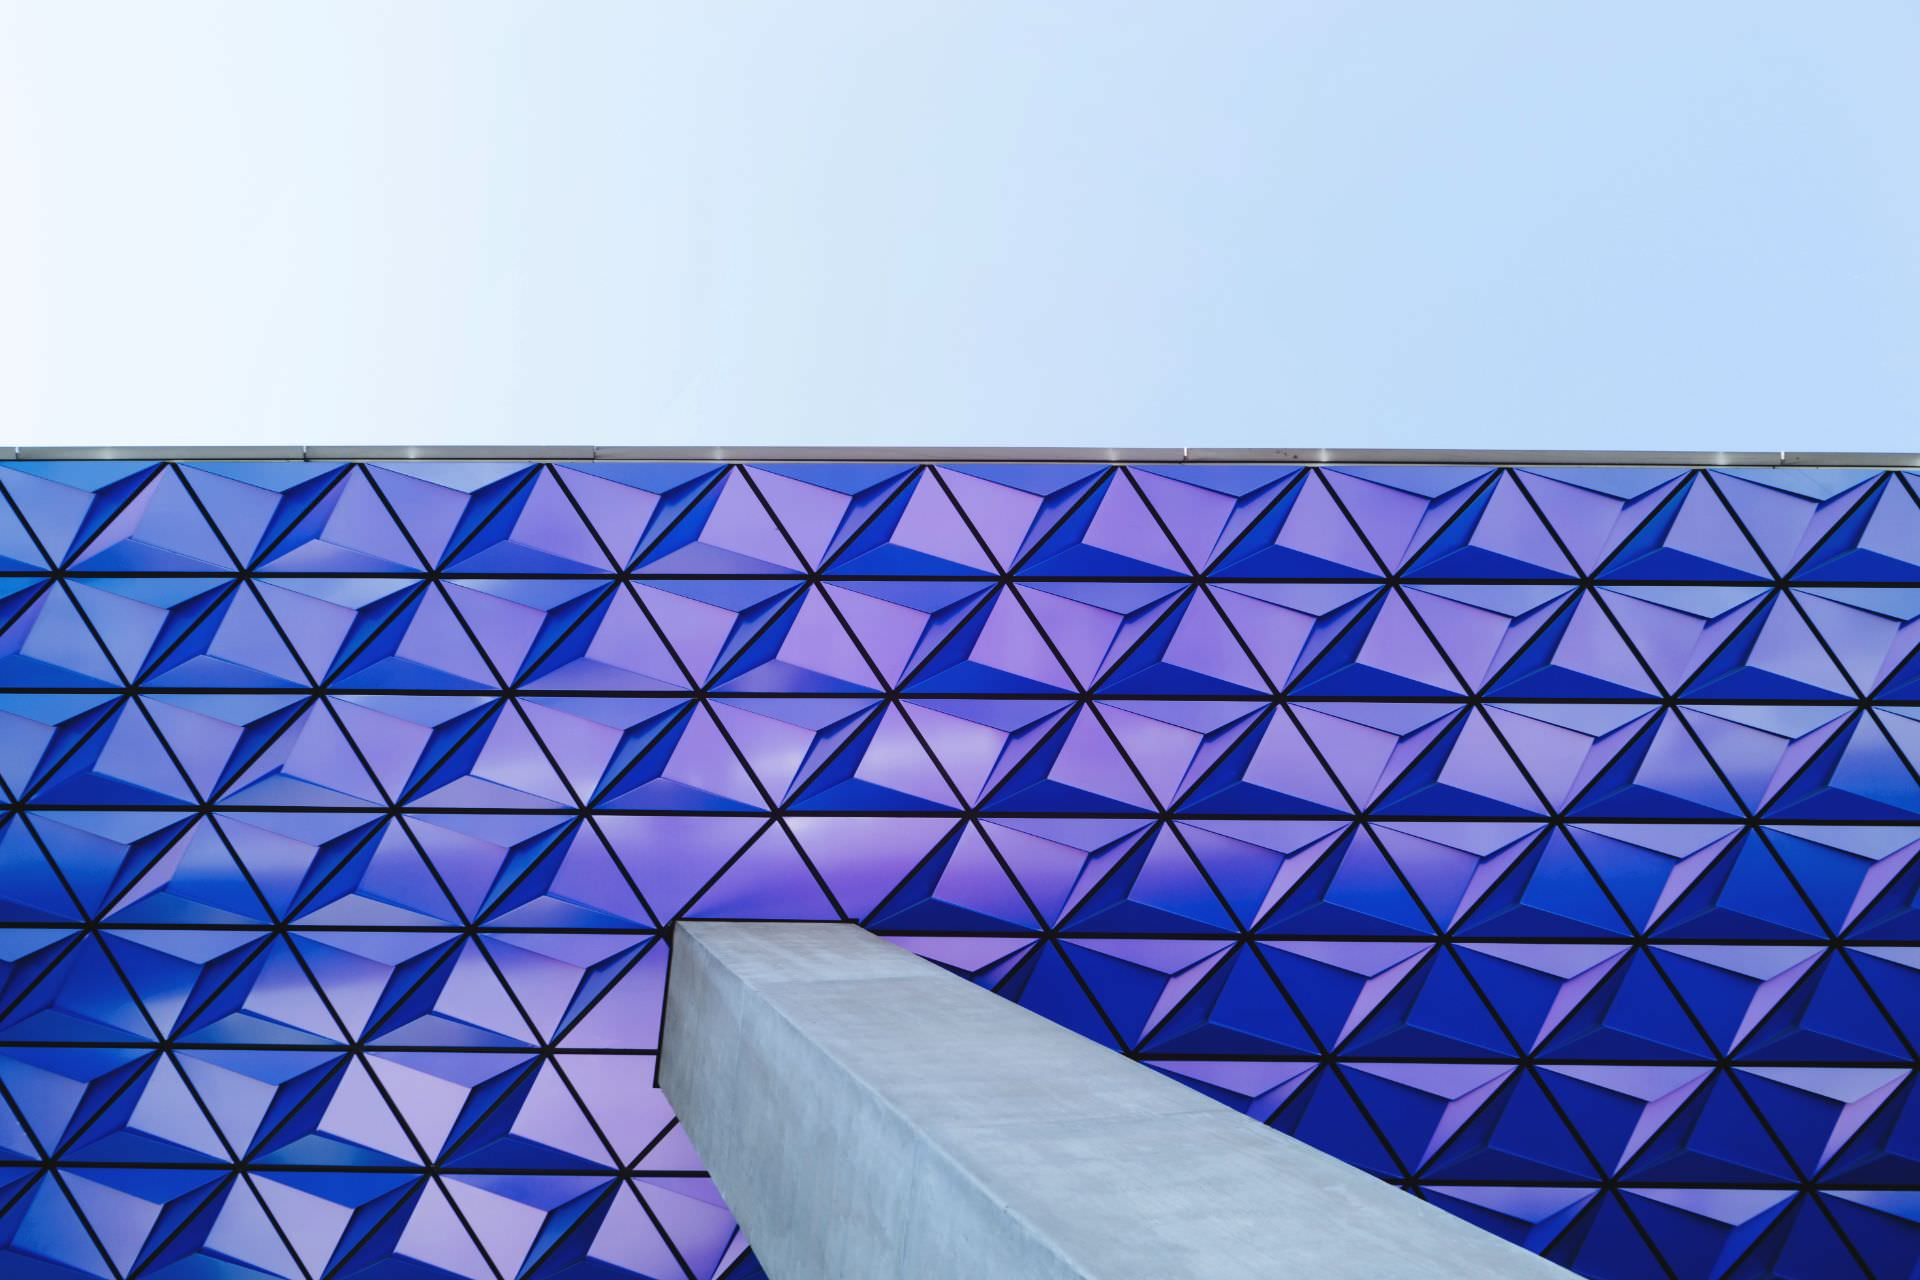 Geometric architectural photography at Ryerson